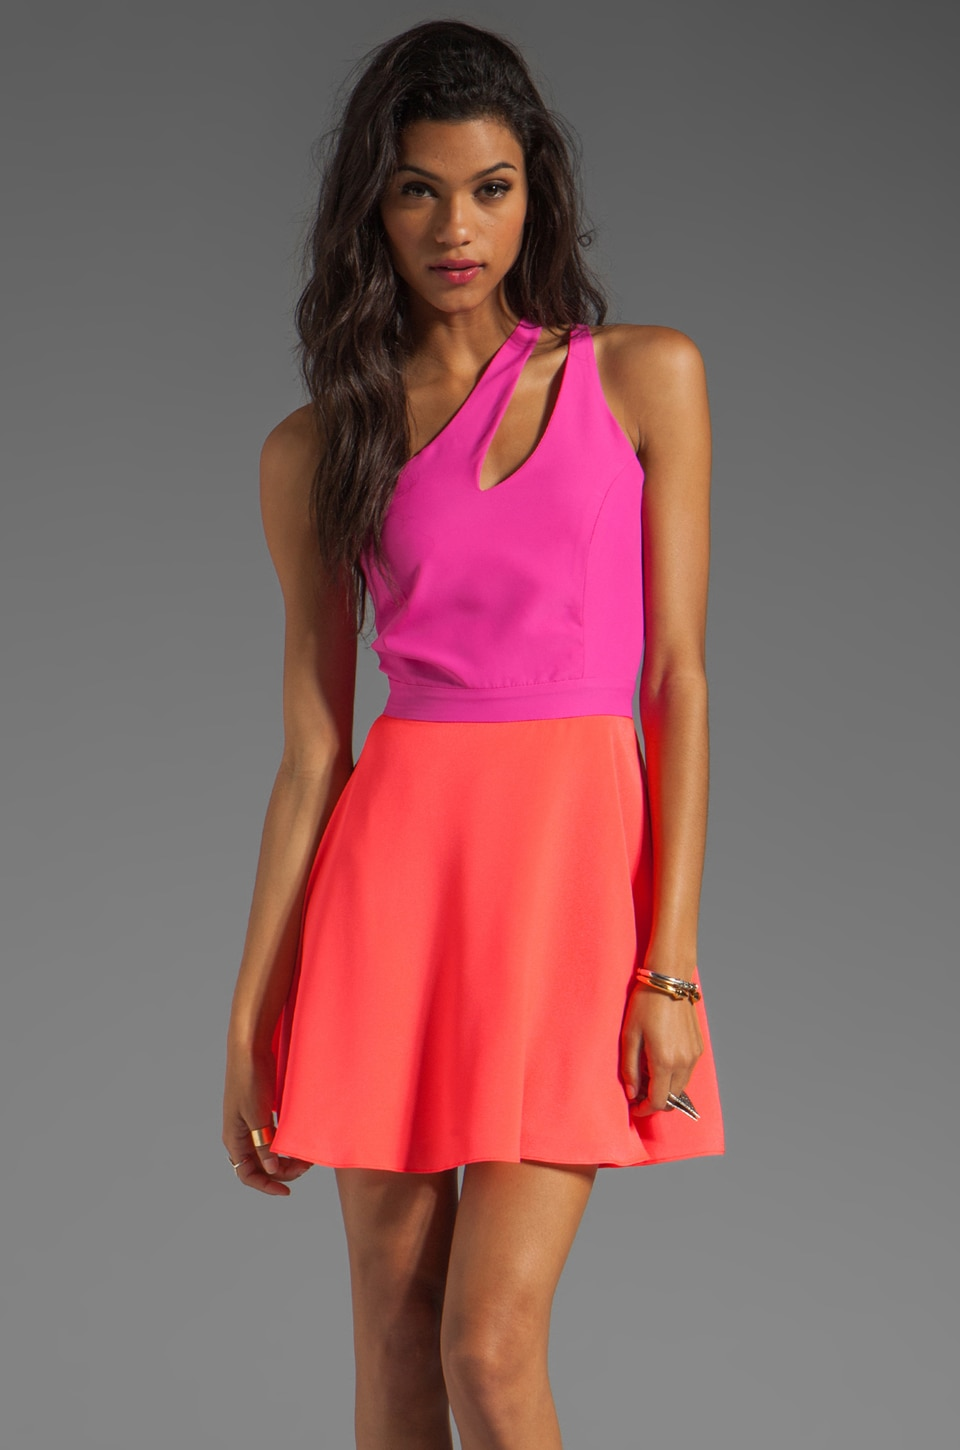 Naven 2 Tone Bella Circle Dress in Pop Pink/Neon Salmon